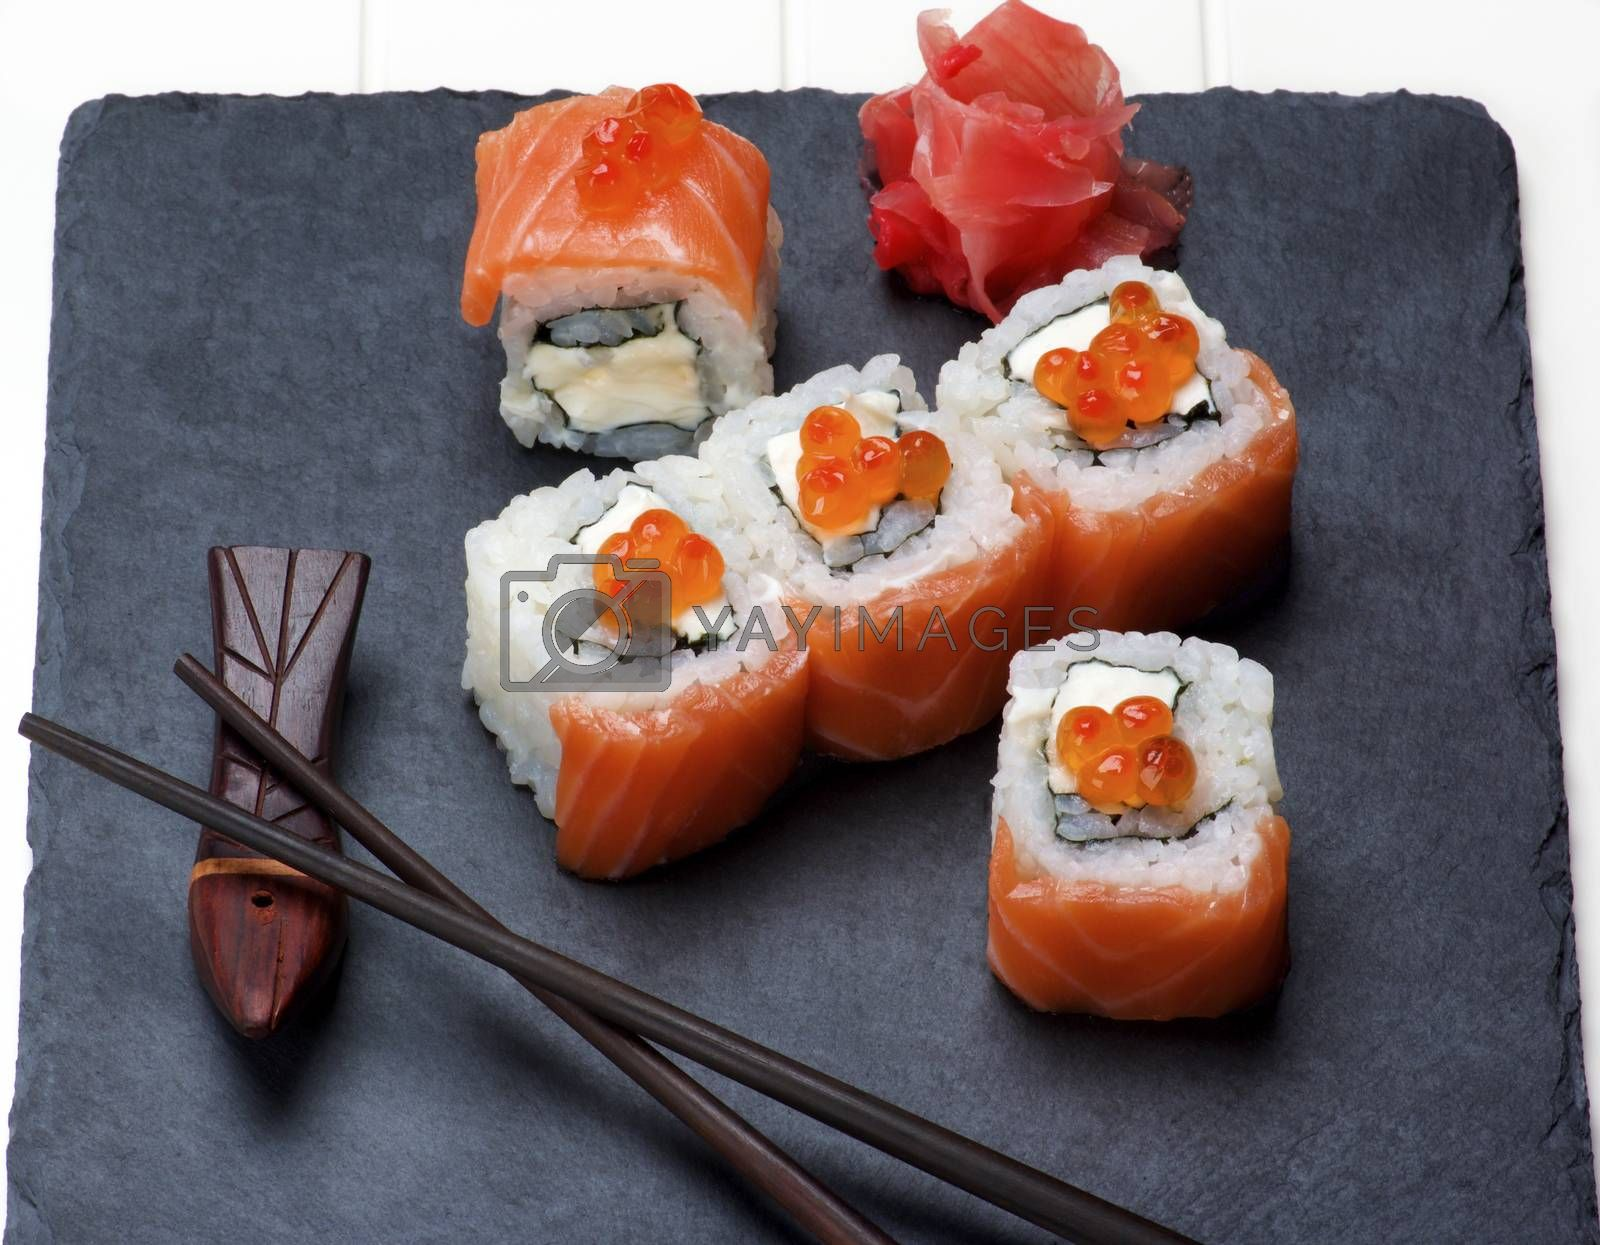 Delicious Sushi with Smoked Sliced Salmon and Gourmet Red Caviar on Serving Stone Plate with Chopsticks and Ginger closeup